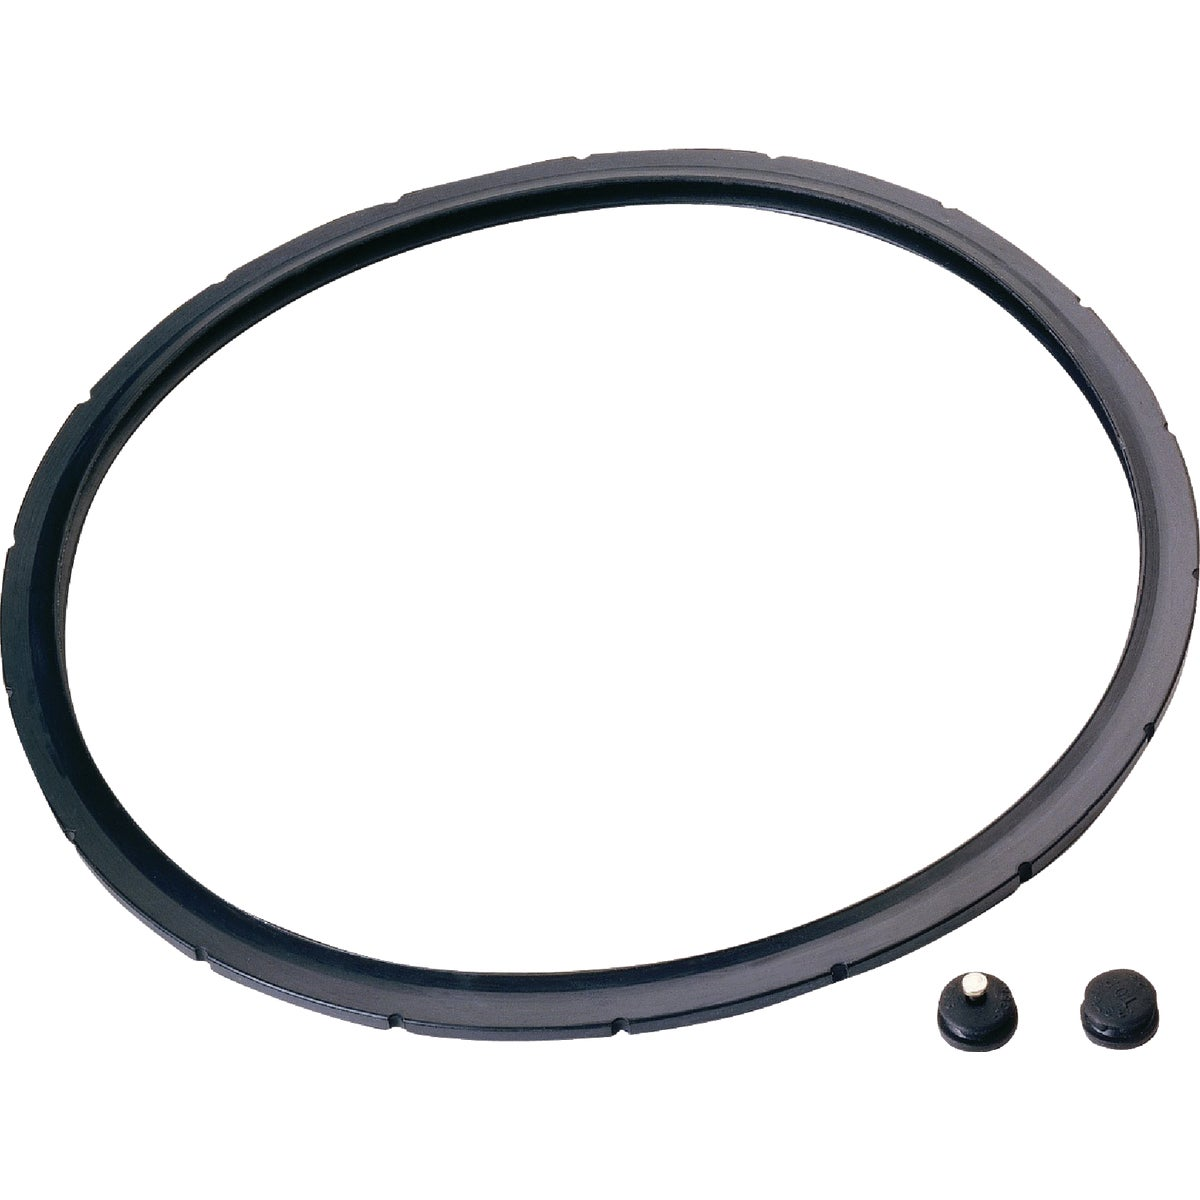 SEALING RING - 09905 by National Presto